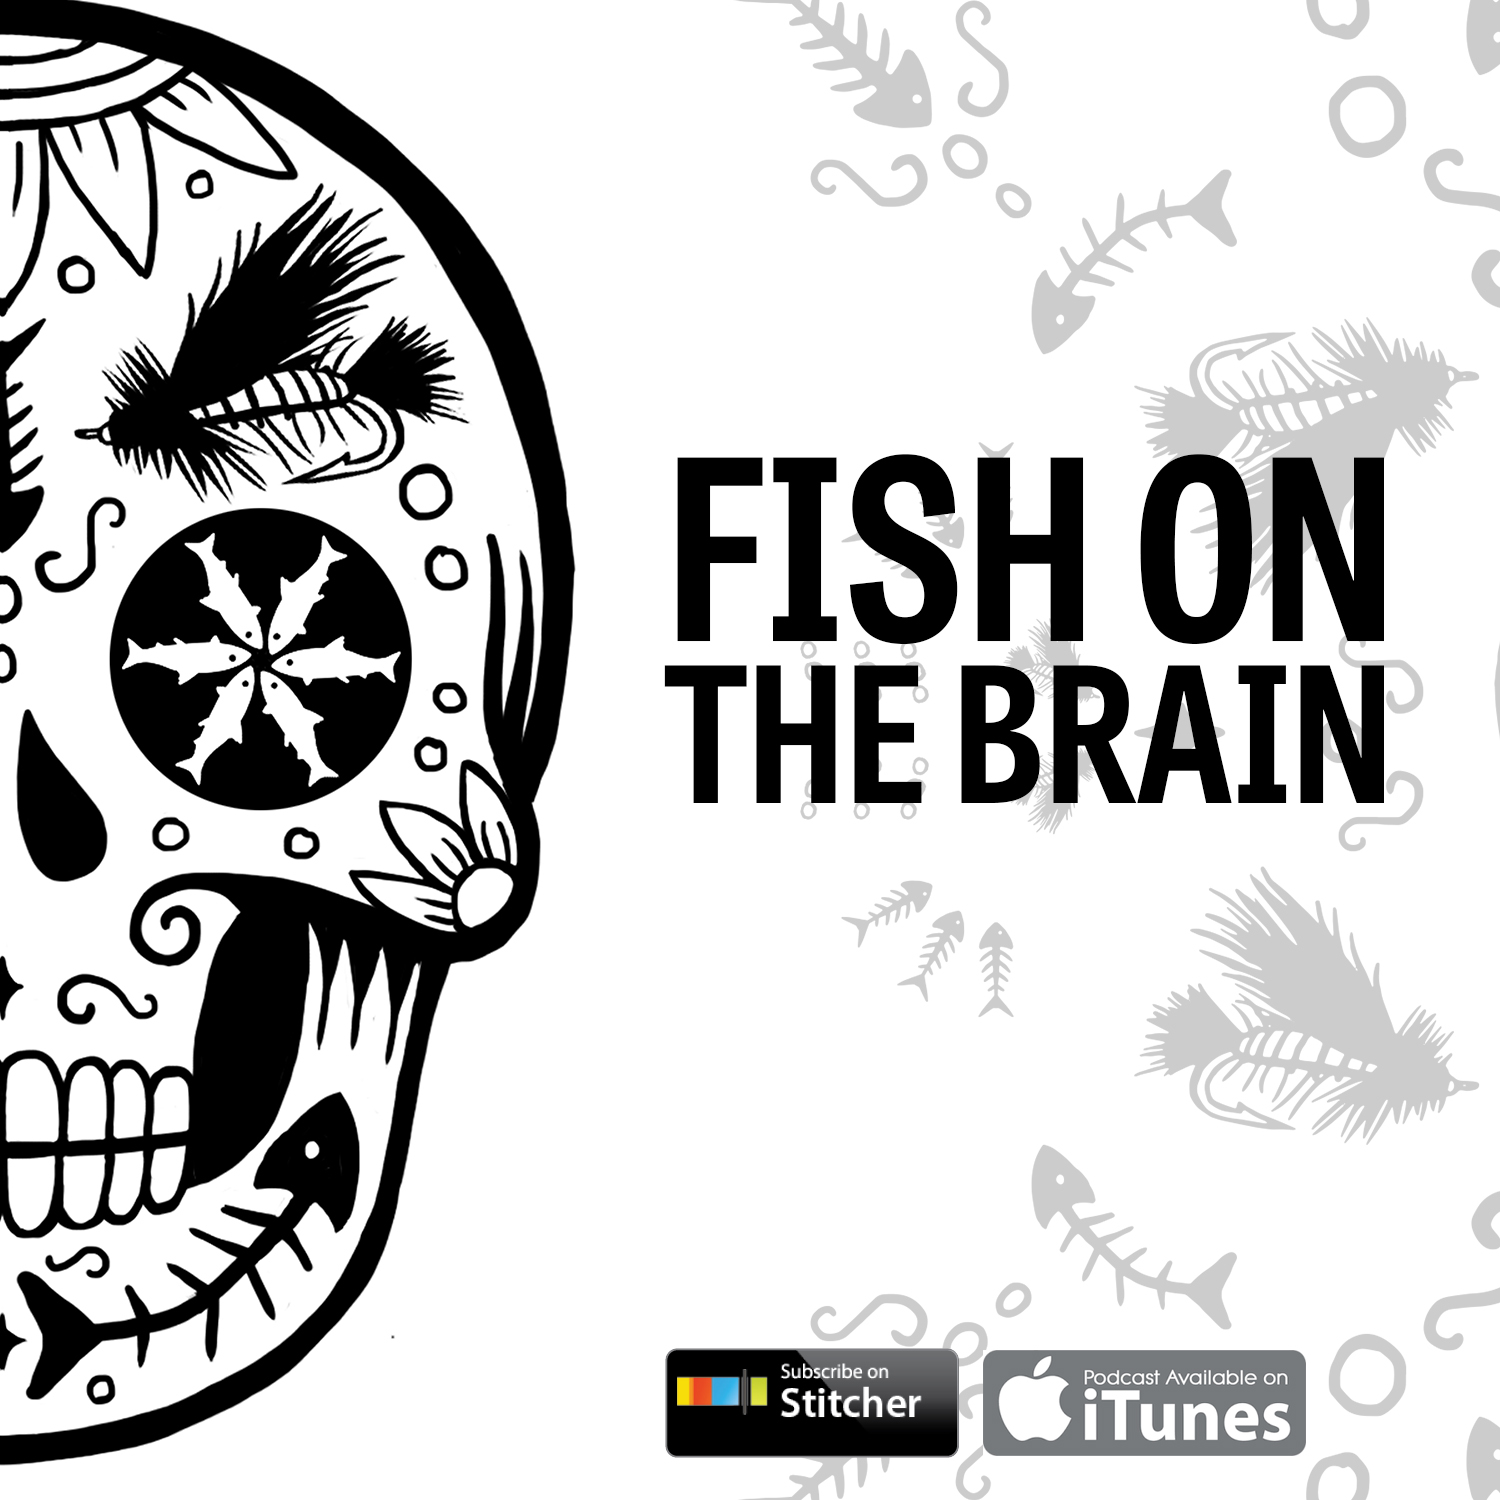 Fish on the brain